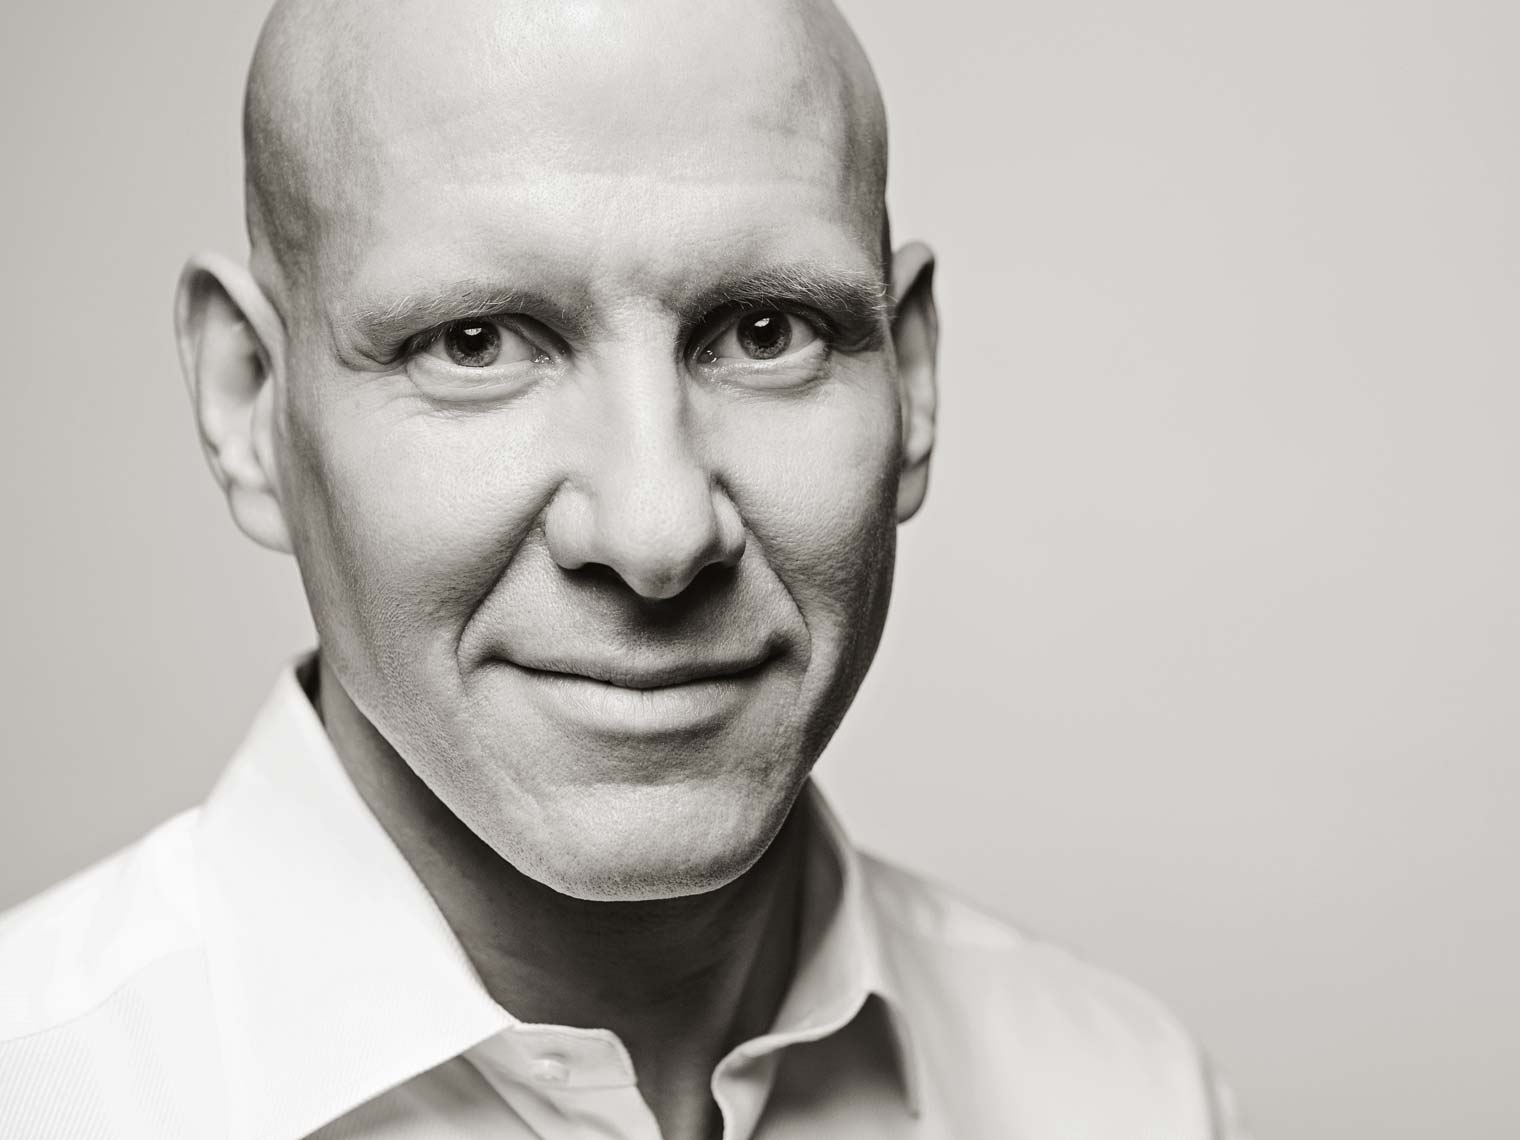 Black and white corporate portrait of bald Atlanta businessman